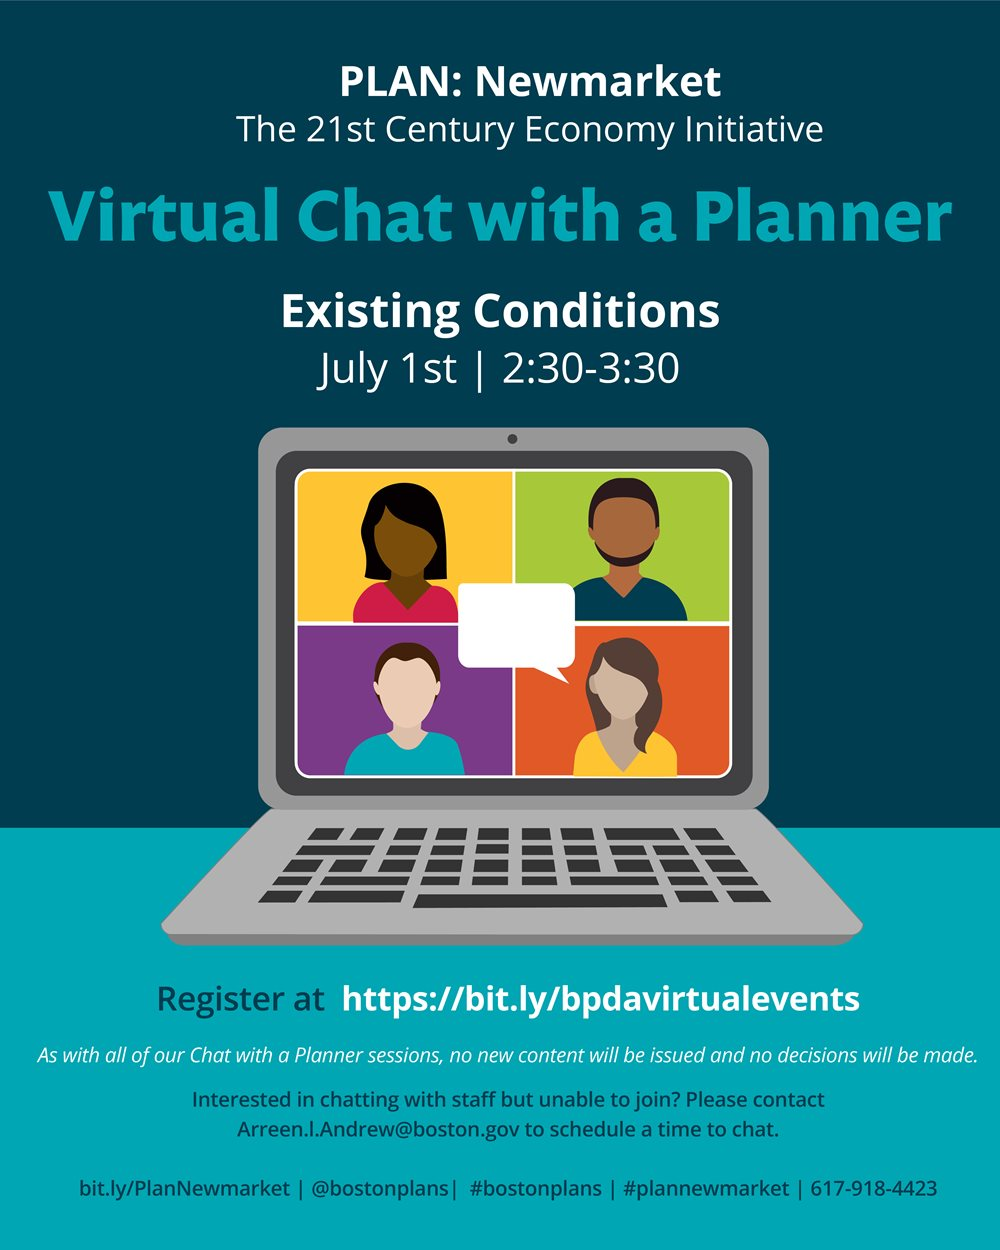 Virtual Chat with a Planner